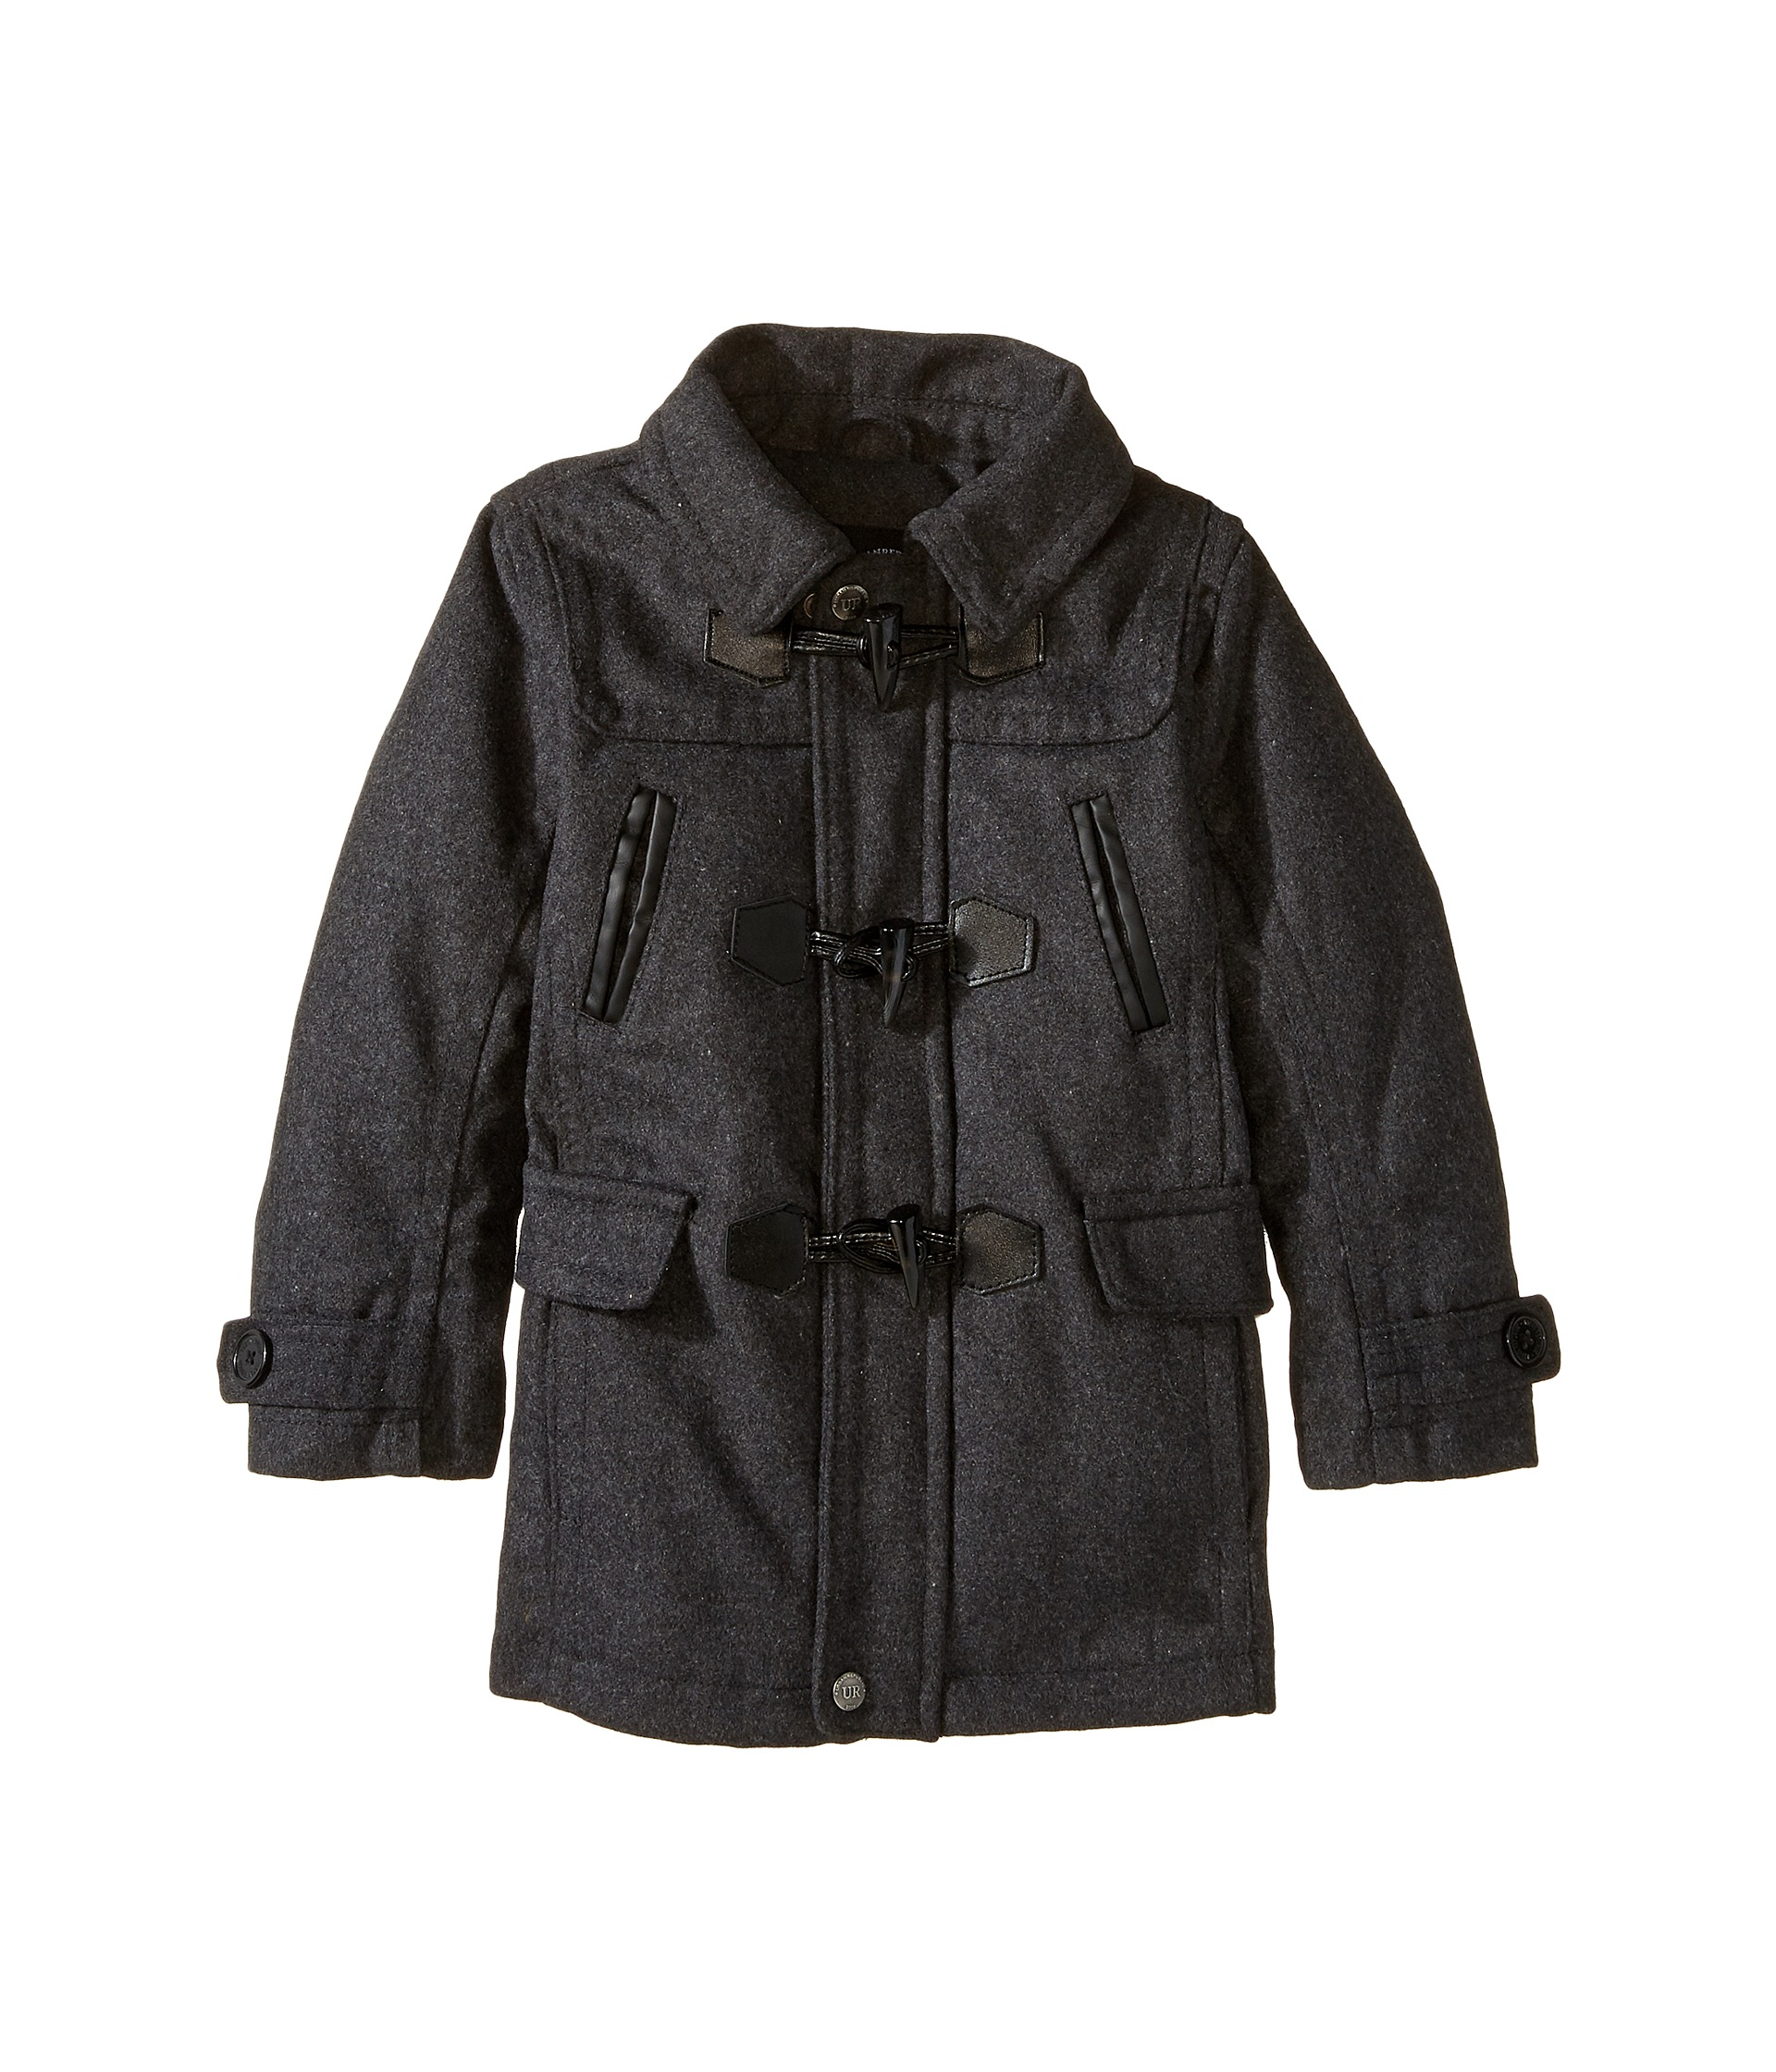 Girls' Black Toggle Coat is Warm with Fleece LiningThe girls' black hooded winter toggle coat combines comfort, warmth and great style. While you e.